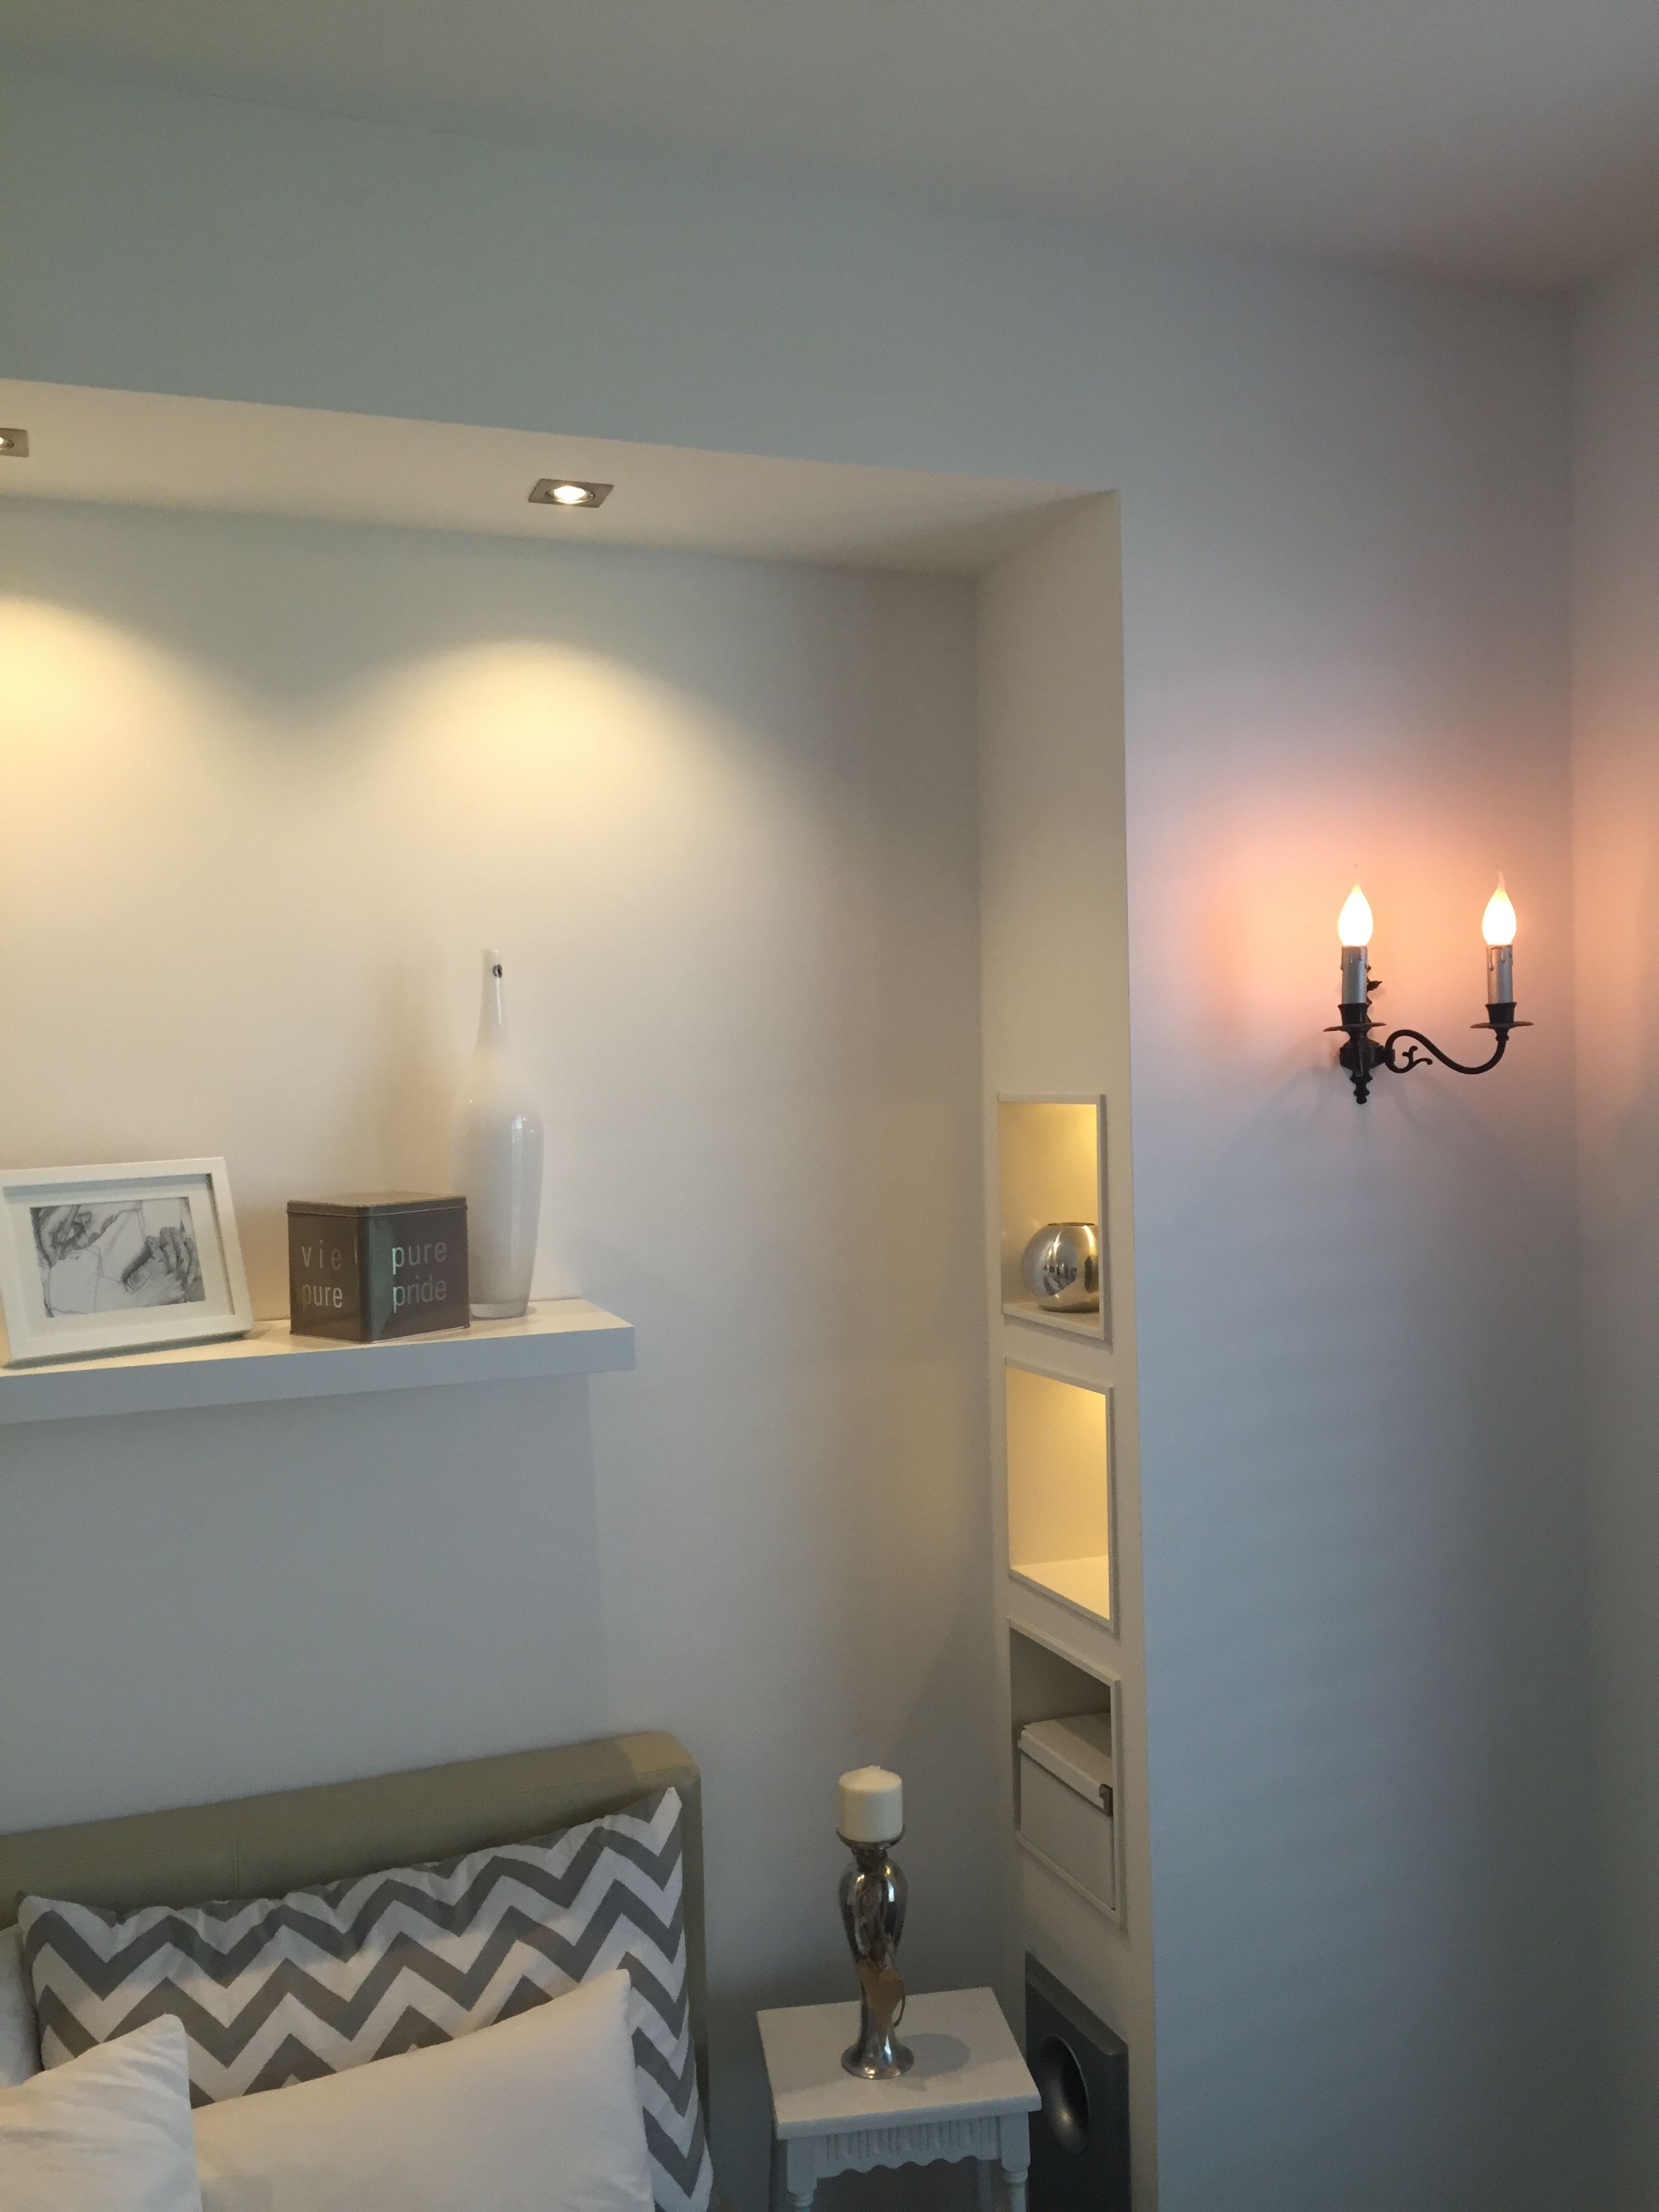 Bedroom Design Light Indirect Indirekte Beleuchtung Abkastung Led Schla Schlafzimmer Beleuchtung Beleuchtung Wohnzimmer Indirekte Beleuchtung Wohnzimmer